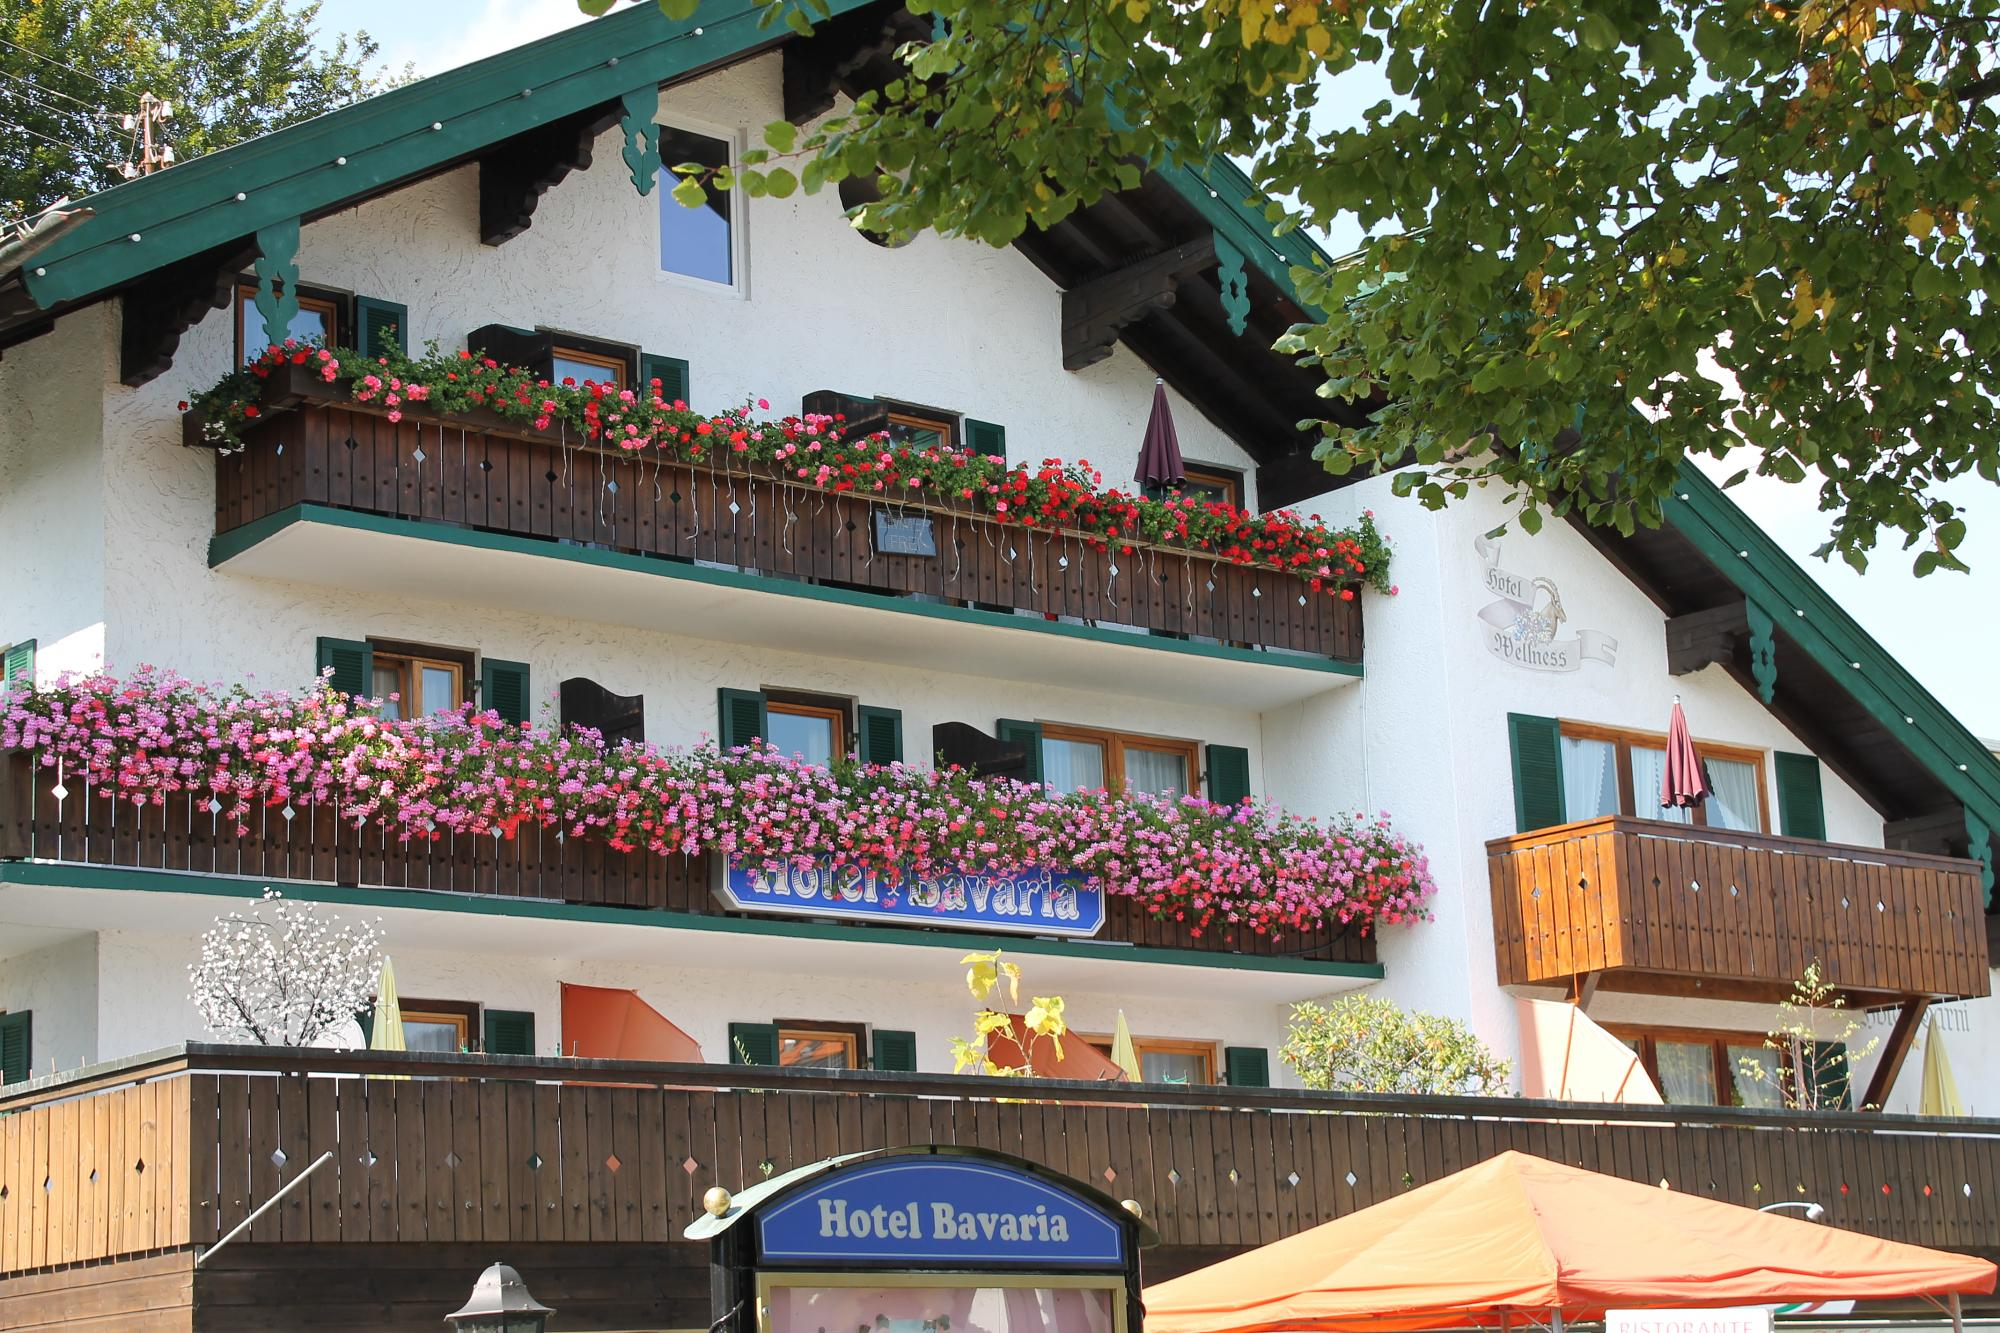 Hotel Bavaria Bad Wiessee in Bad Wiessee